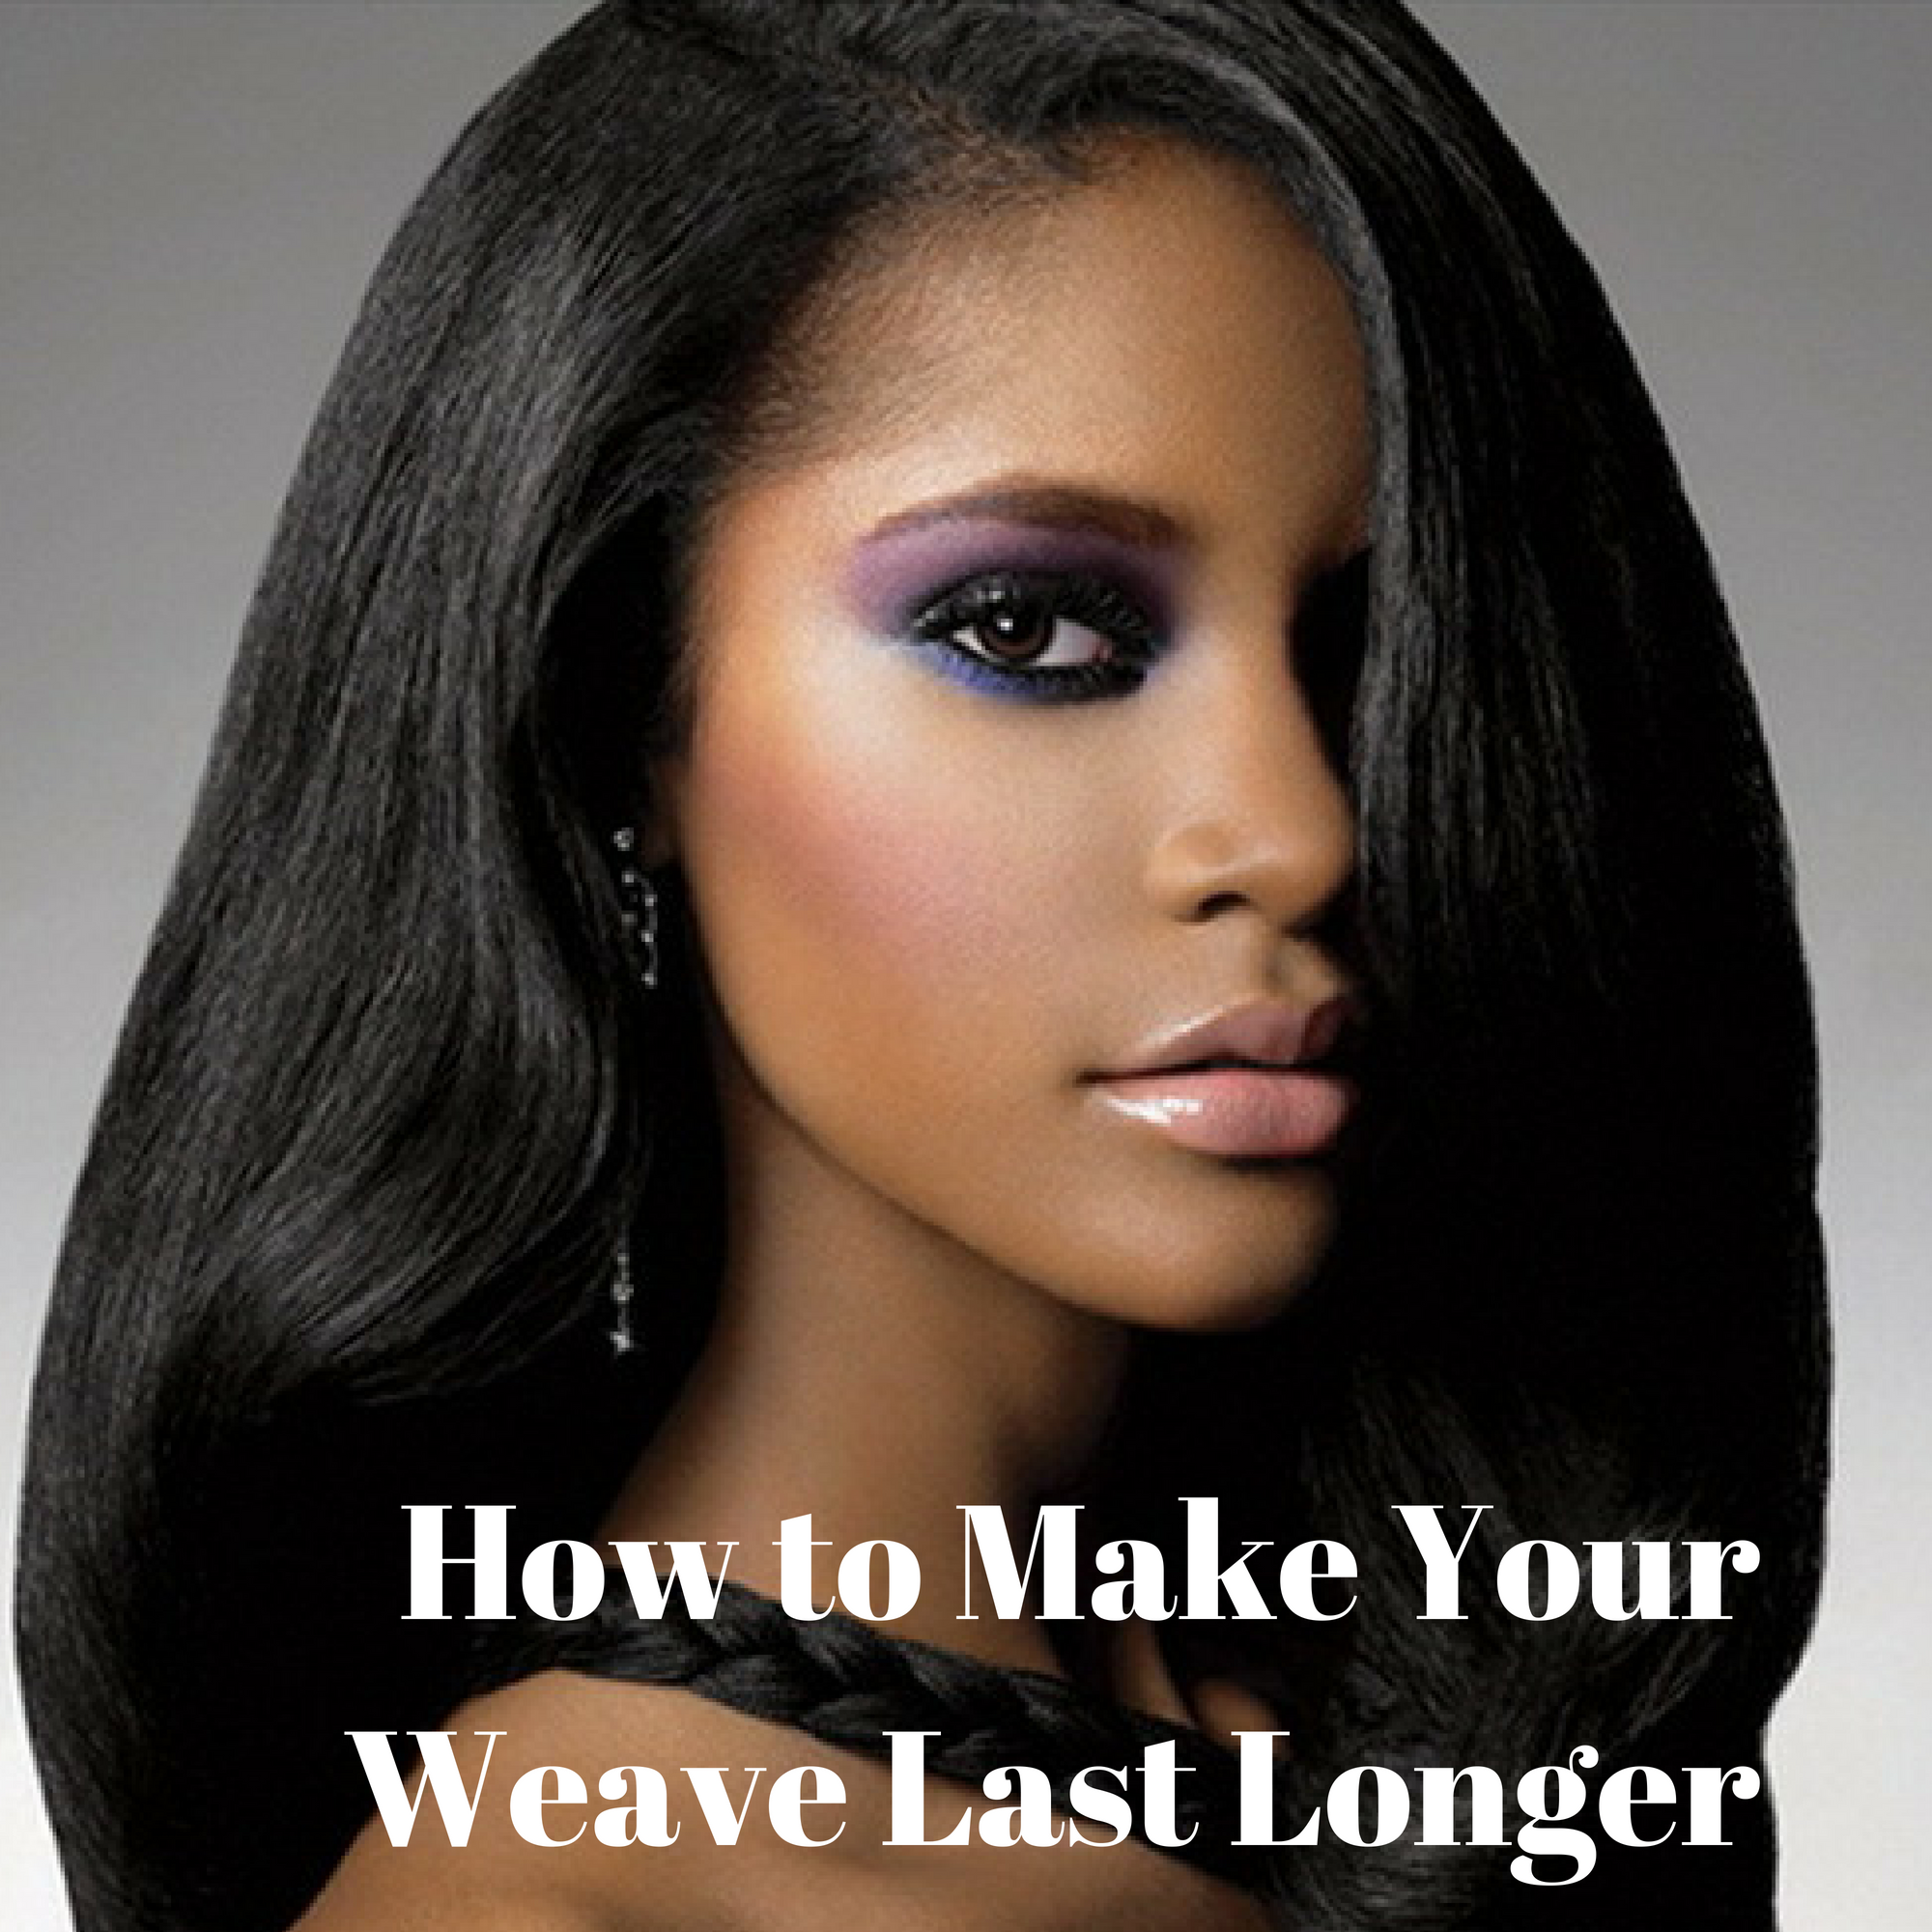 HOW TO MAKE YOUR WEAVE LAST LONGER